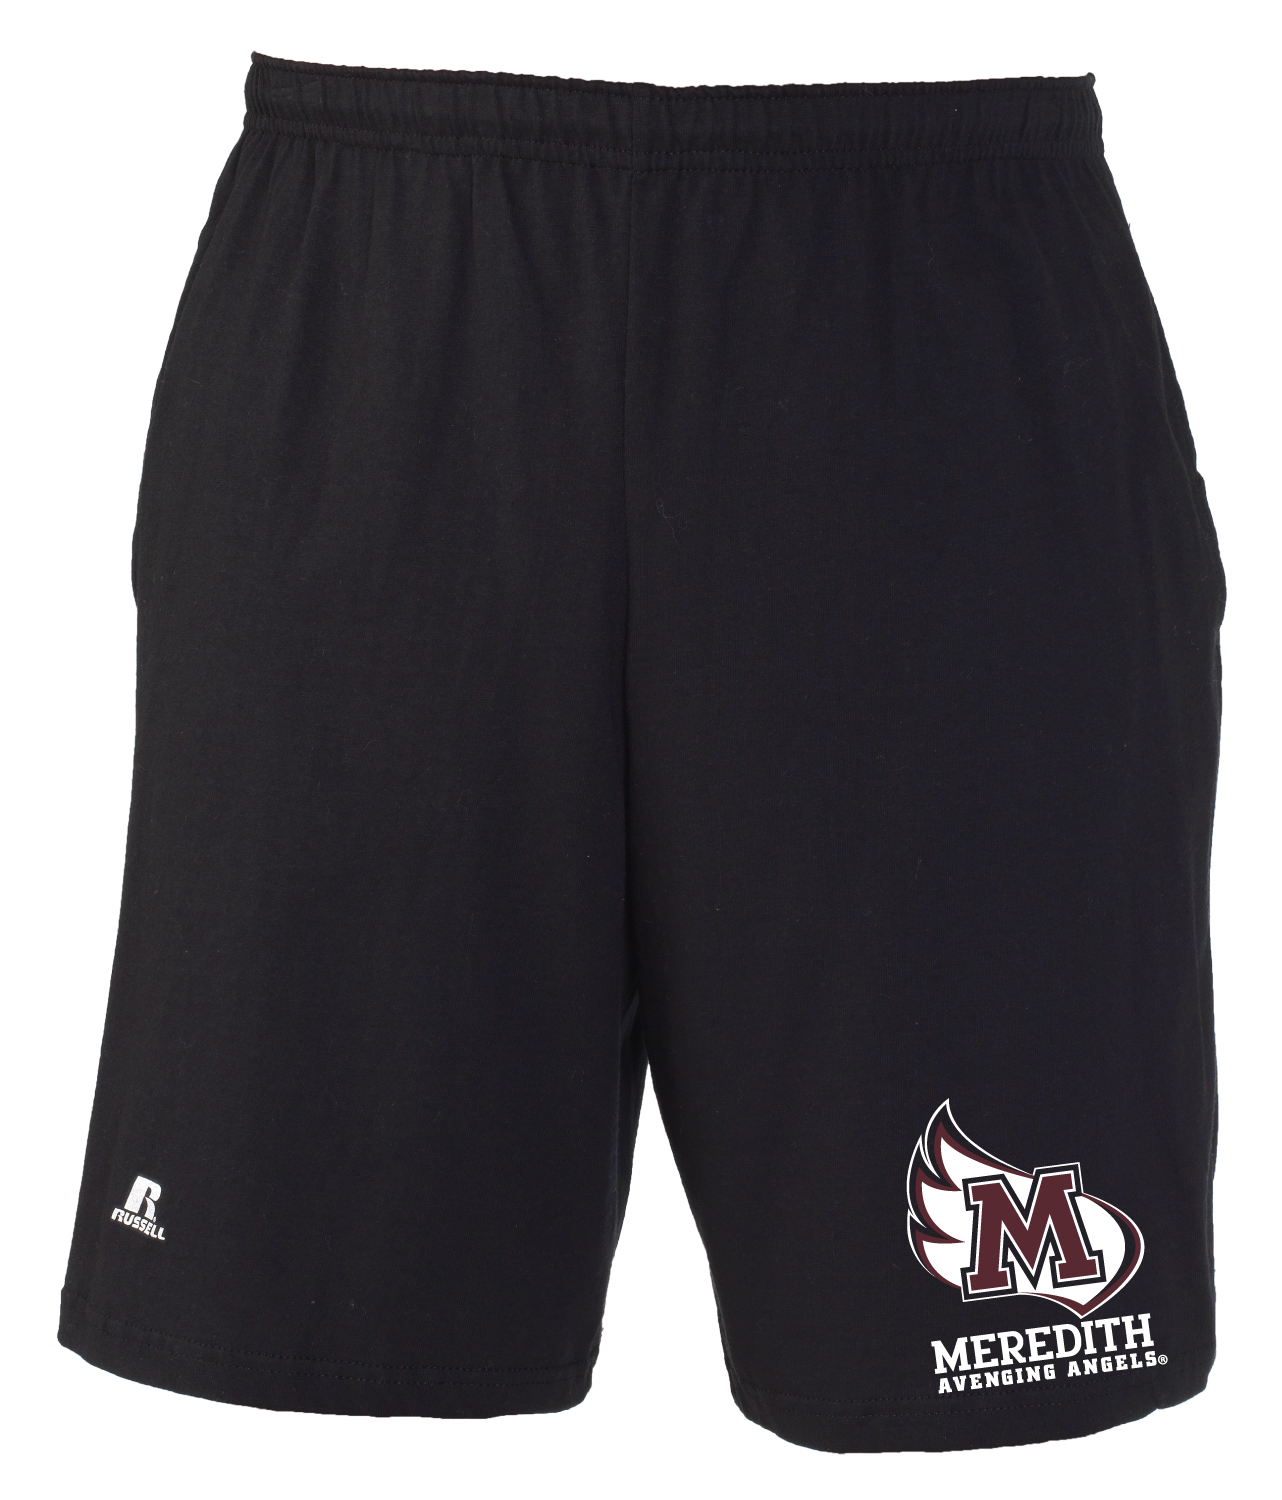 Image for the Men's Black Jersey Short M Wing Russell product